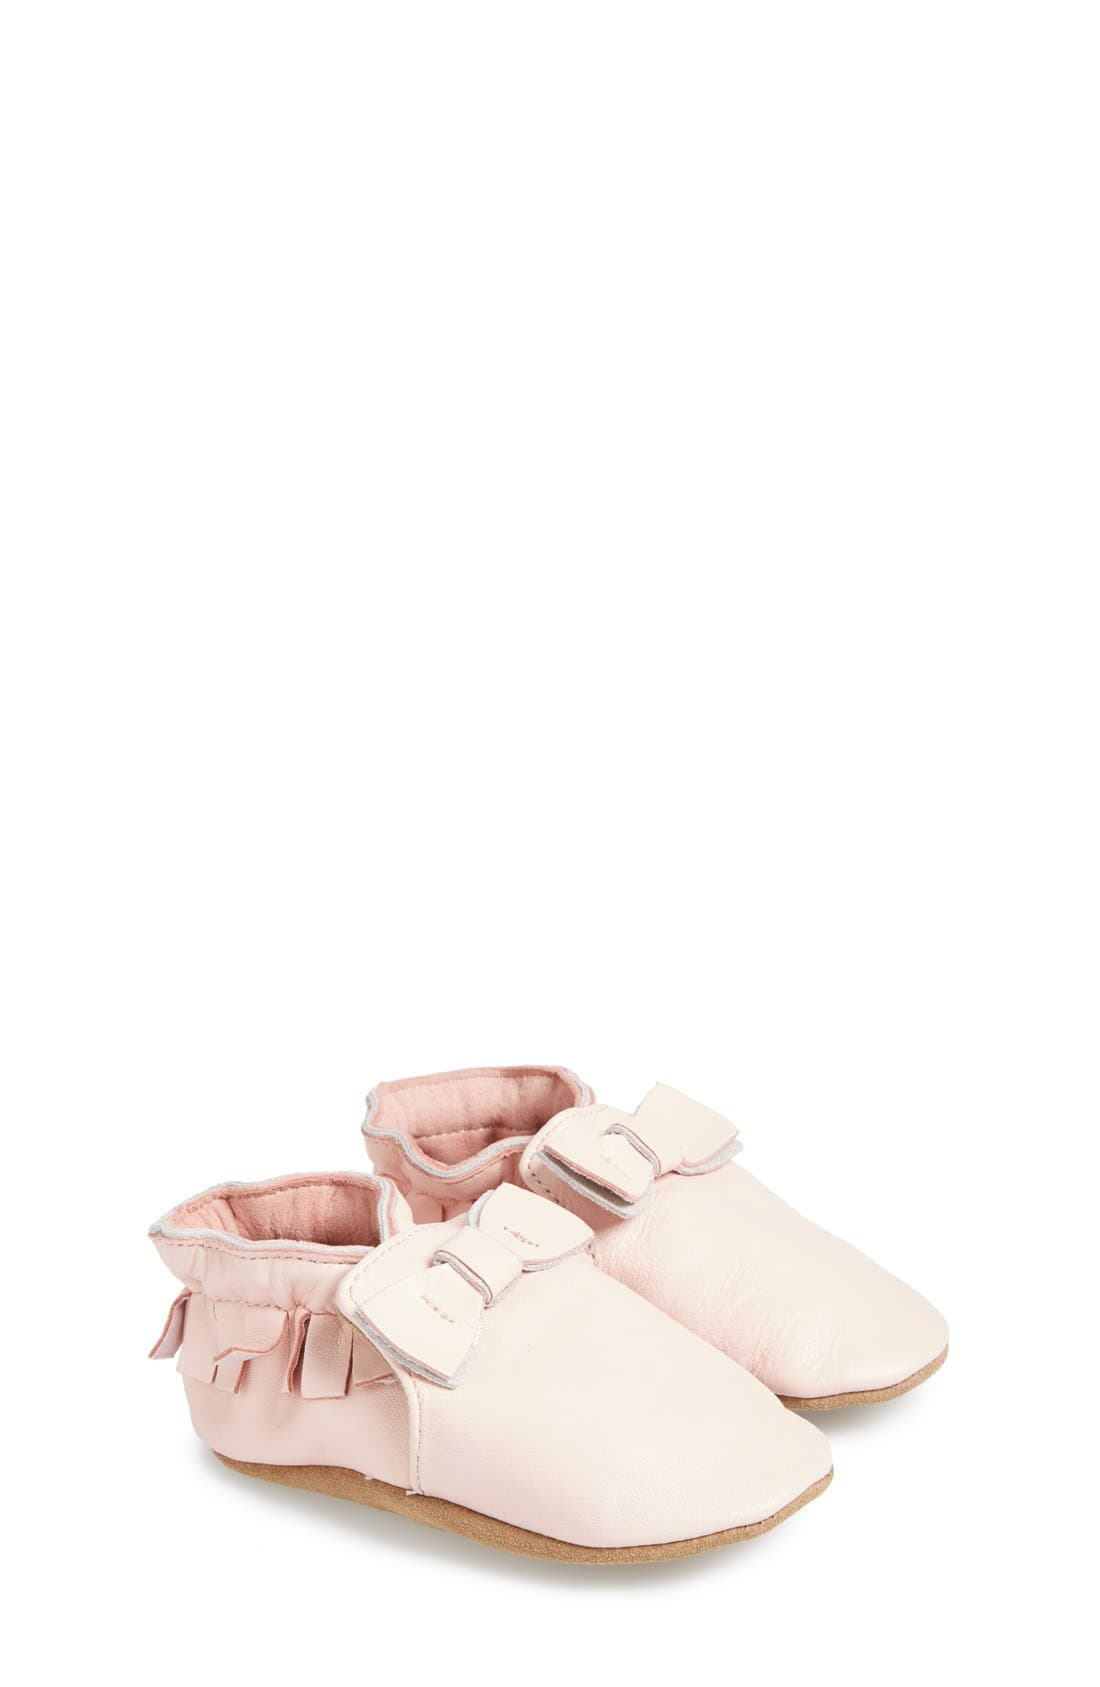 'Maggie Moccasin' Crib Shoe,                         Main,                         color, Pastel Pink